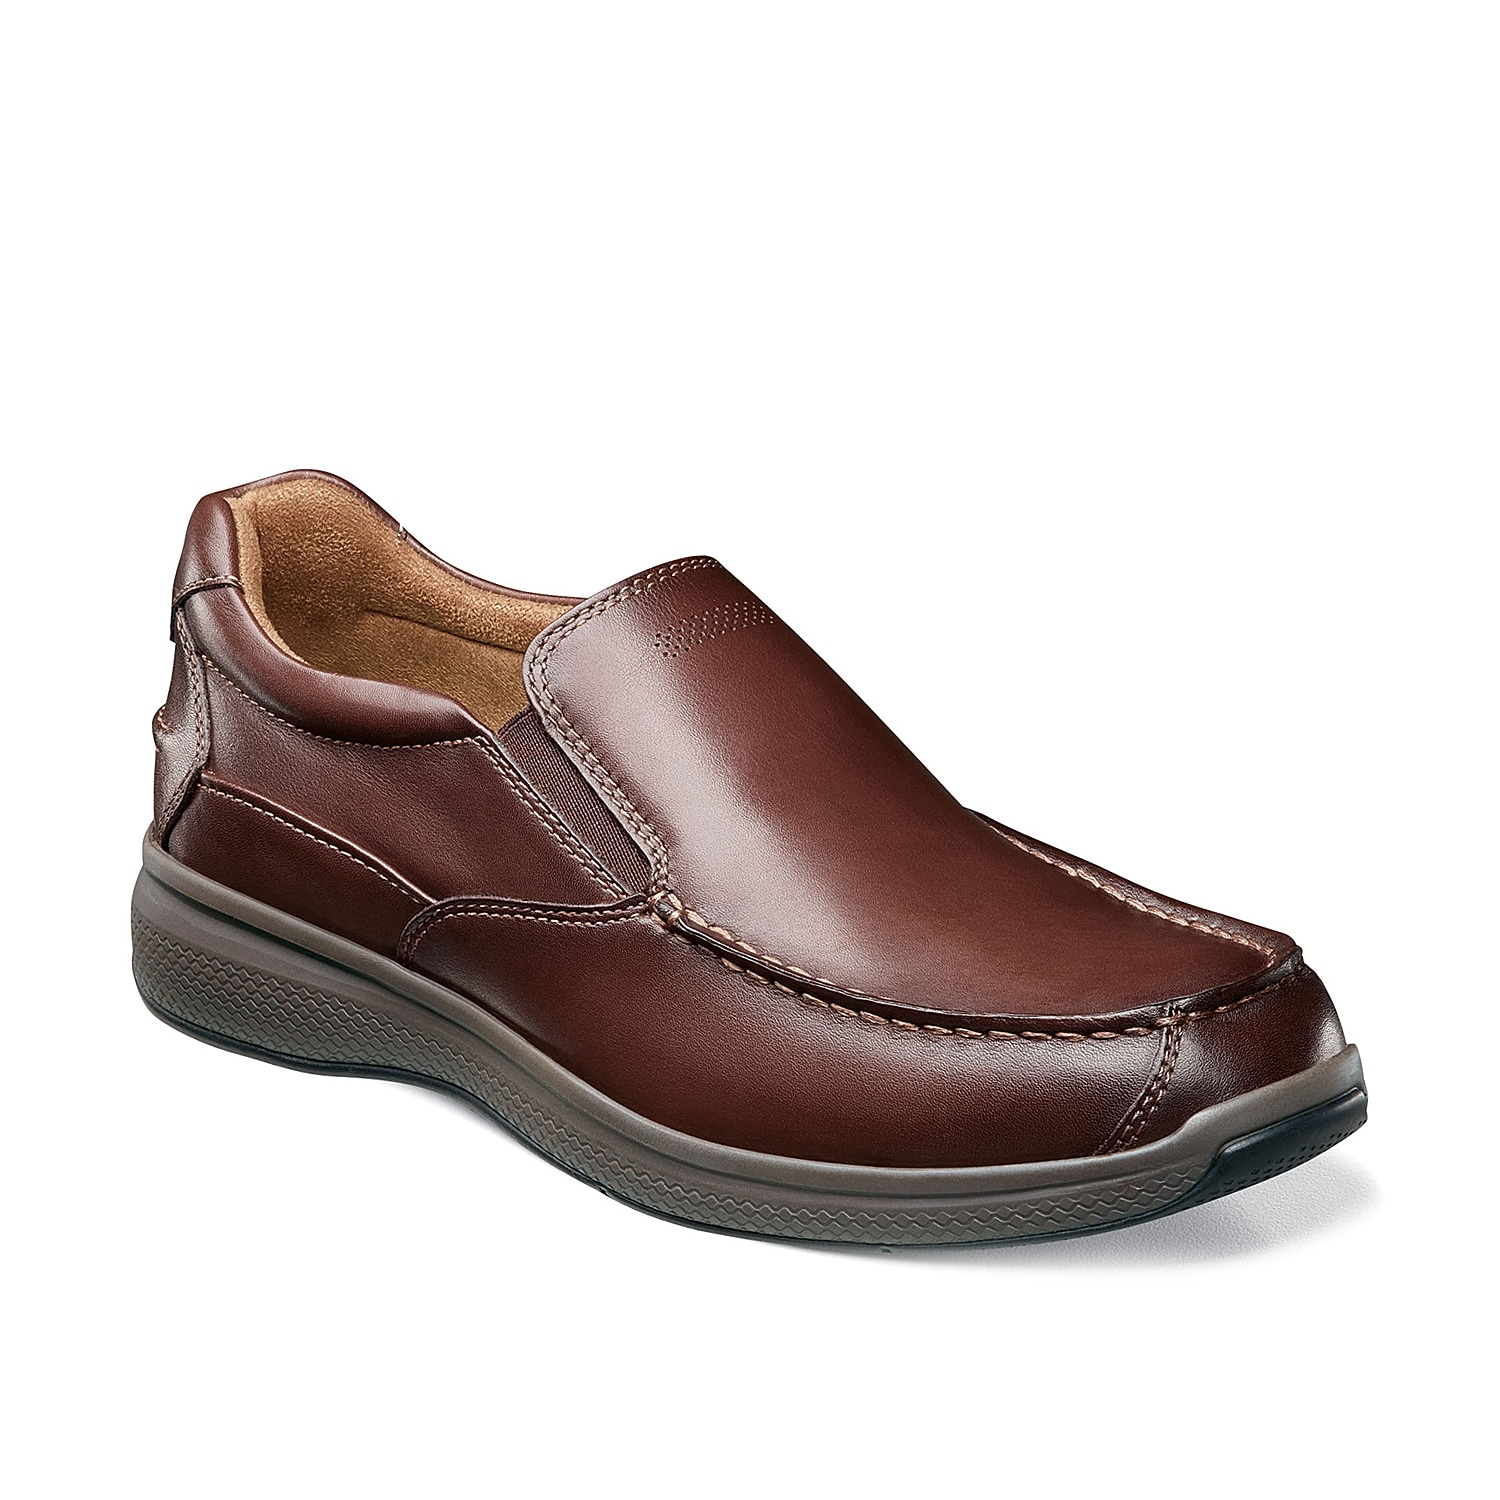 Add a casual accent to your work or night-out attire in the Great Lakes loafer from Florsheim. These slip-ons feature perforated detailing for a modern touch and are finished in rich leather for lasting wear.